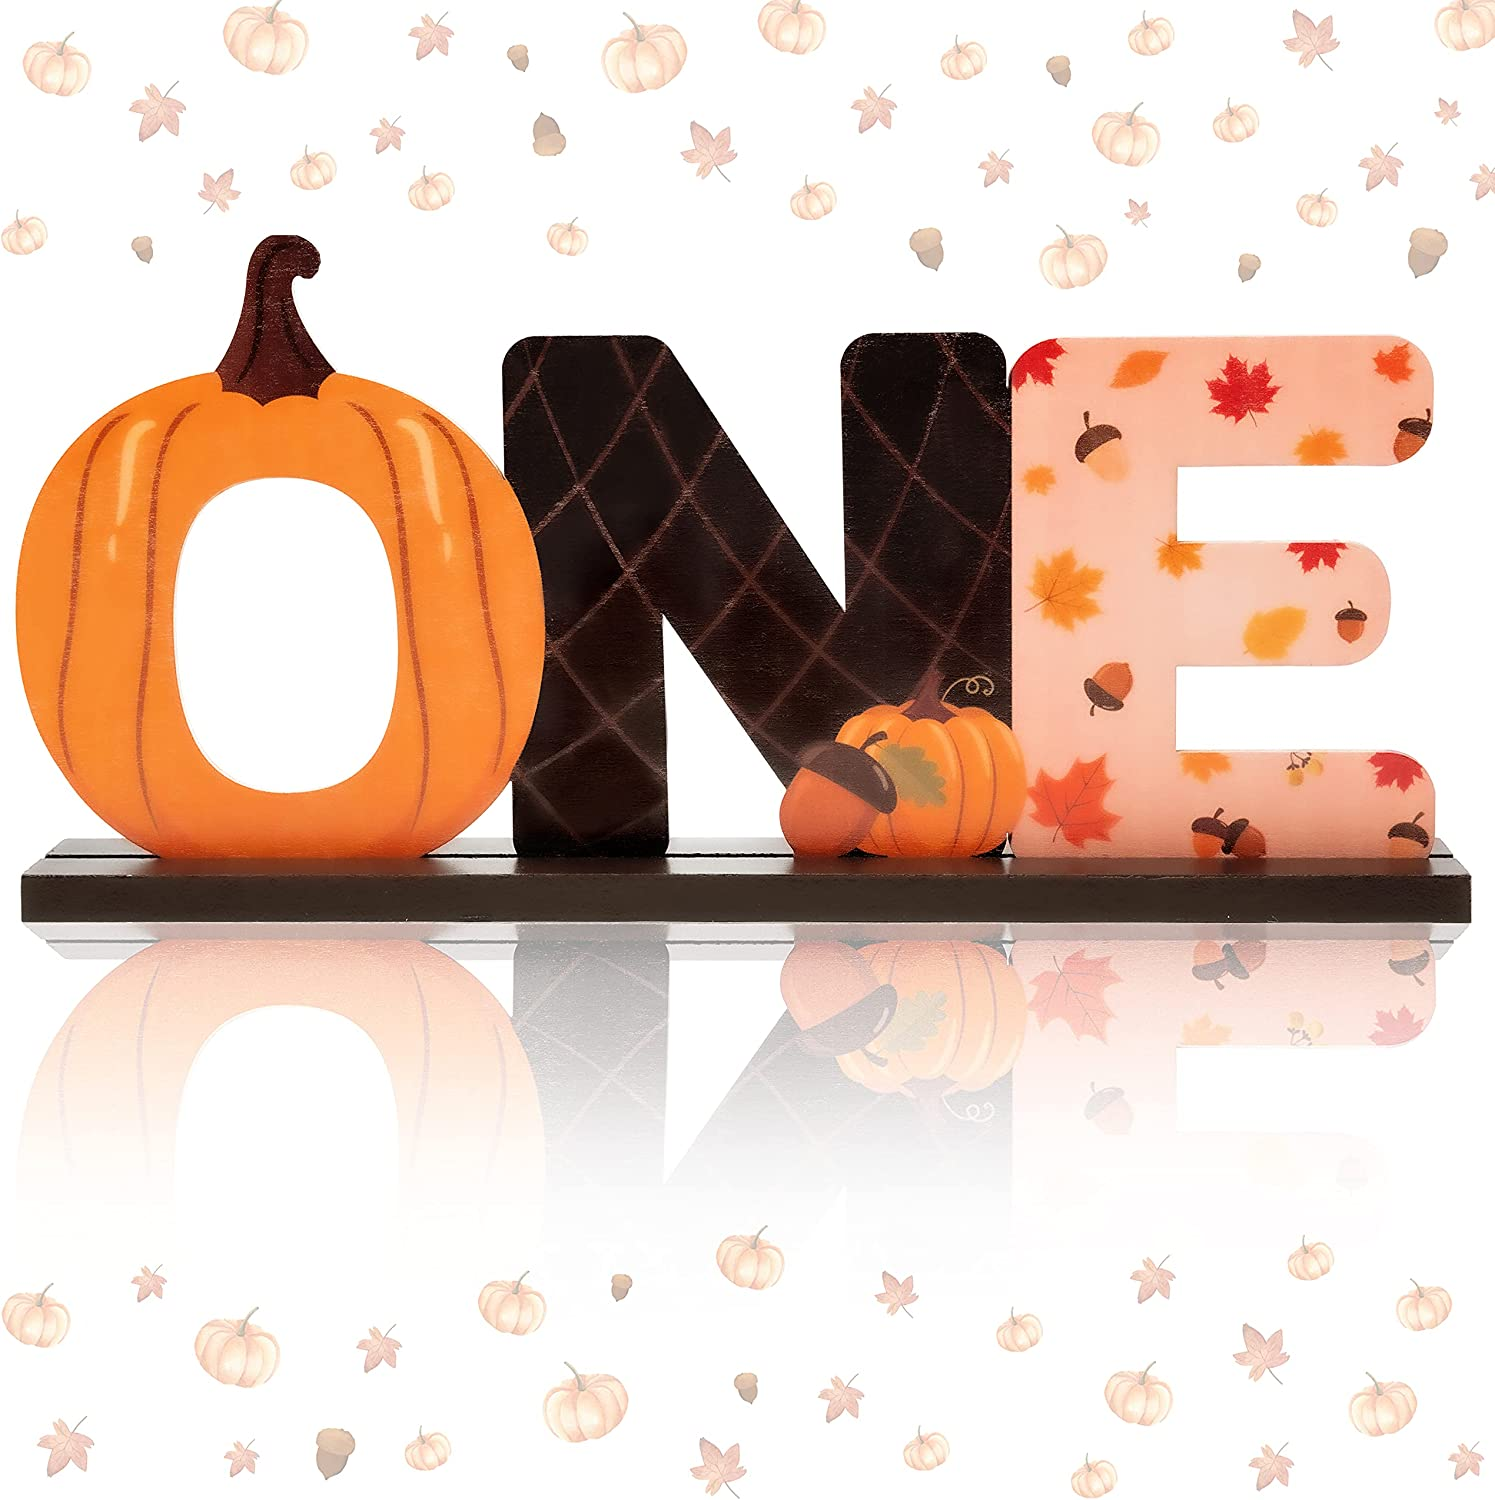 BeYumi Pumpkin ONE Letter Sign Wooden Table Centerpieces Halloween Thanksgiving Party Decor for Kids Autumn Fall Party Little Pumpkin Theme 1st Birthday Milestone Baby Shower Cake Smash Photo Prop